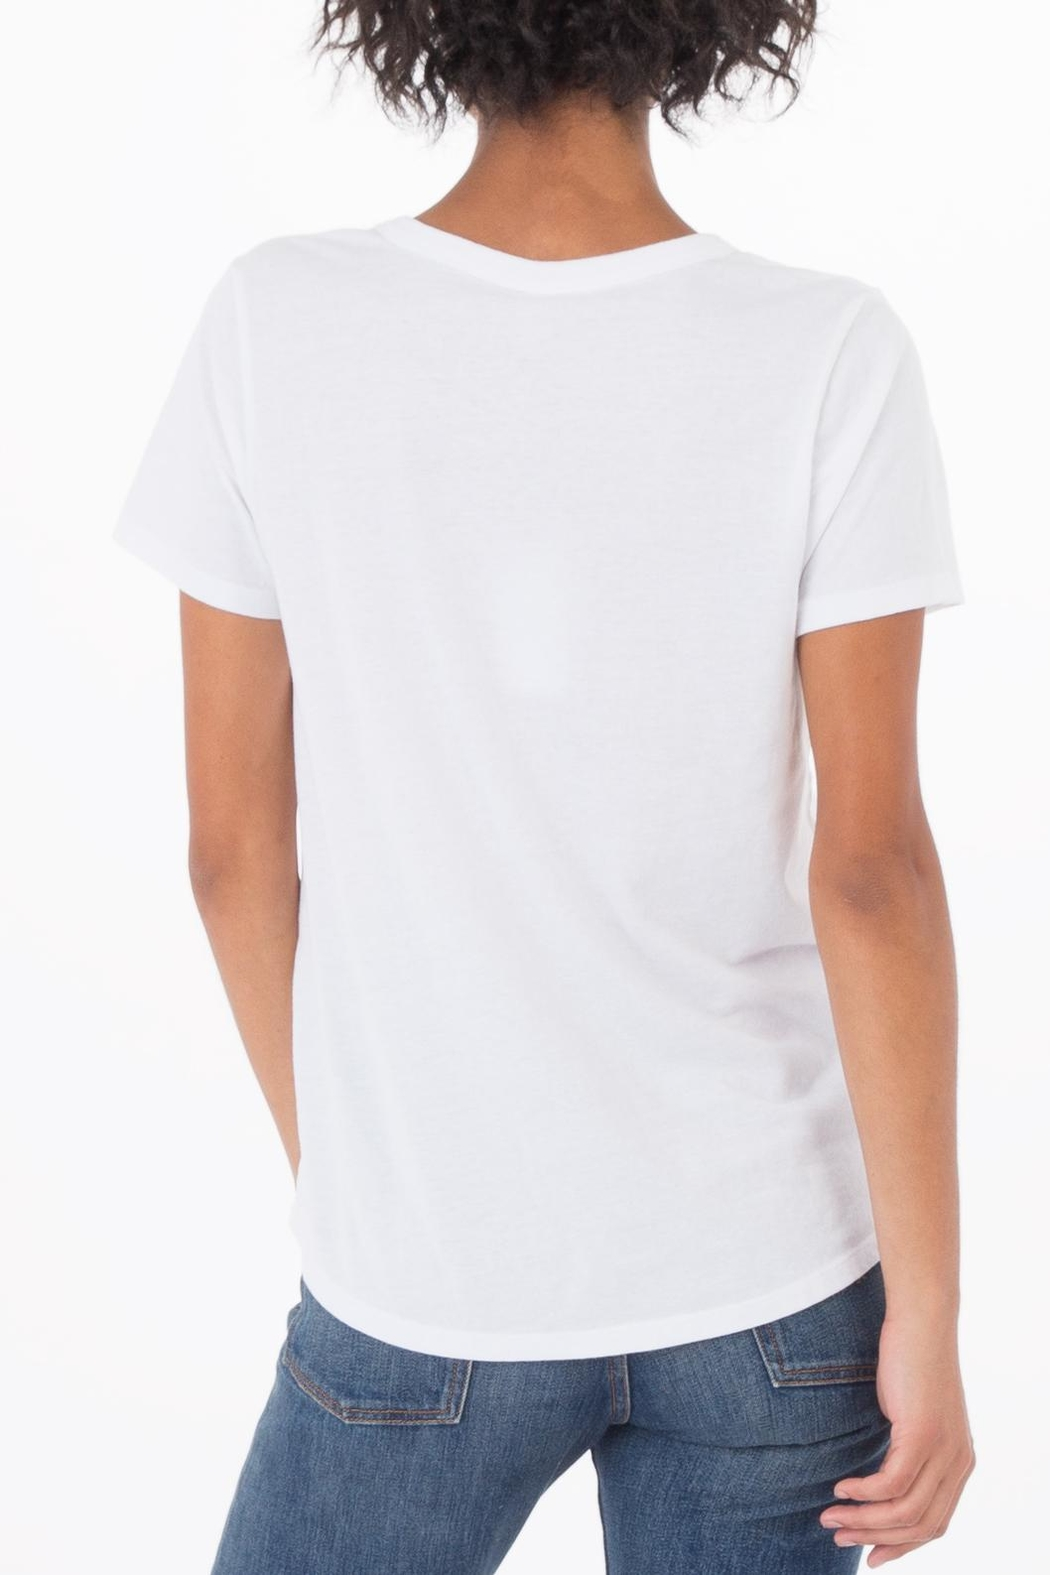 z supply Cut Out Tee - Back Cropped Image